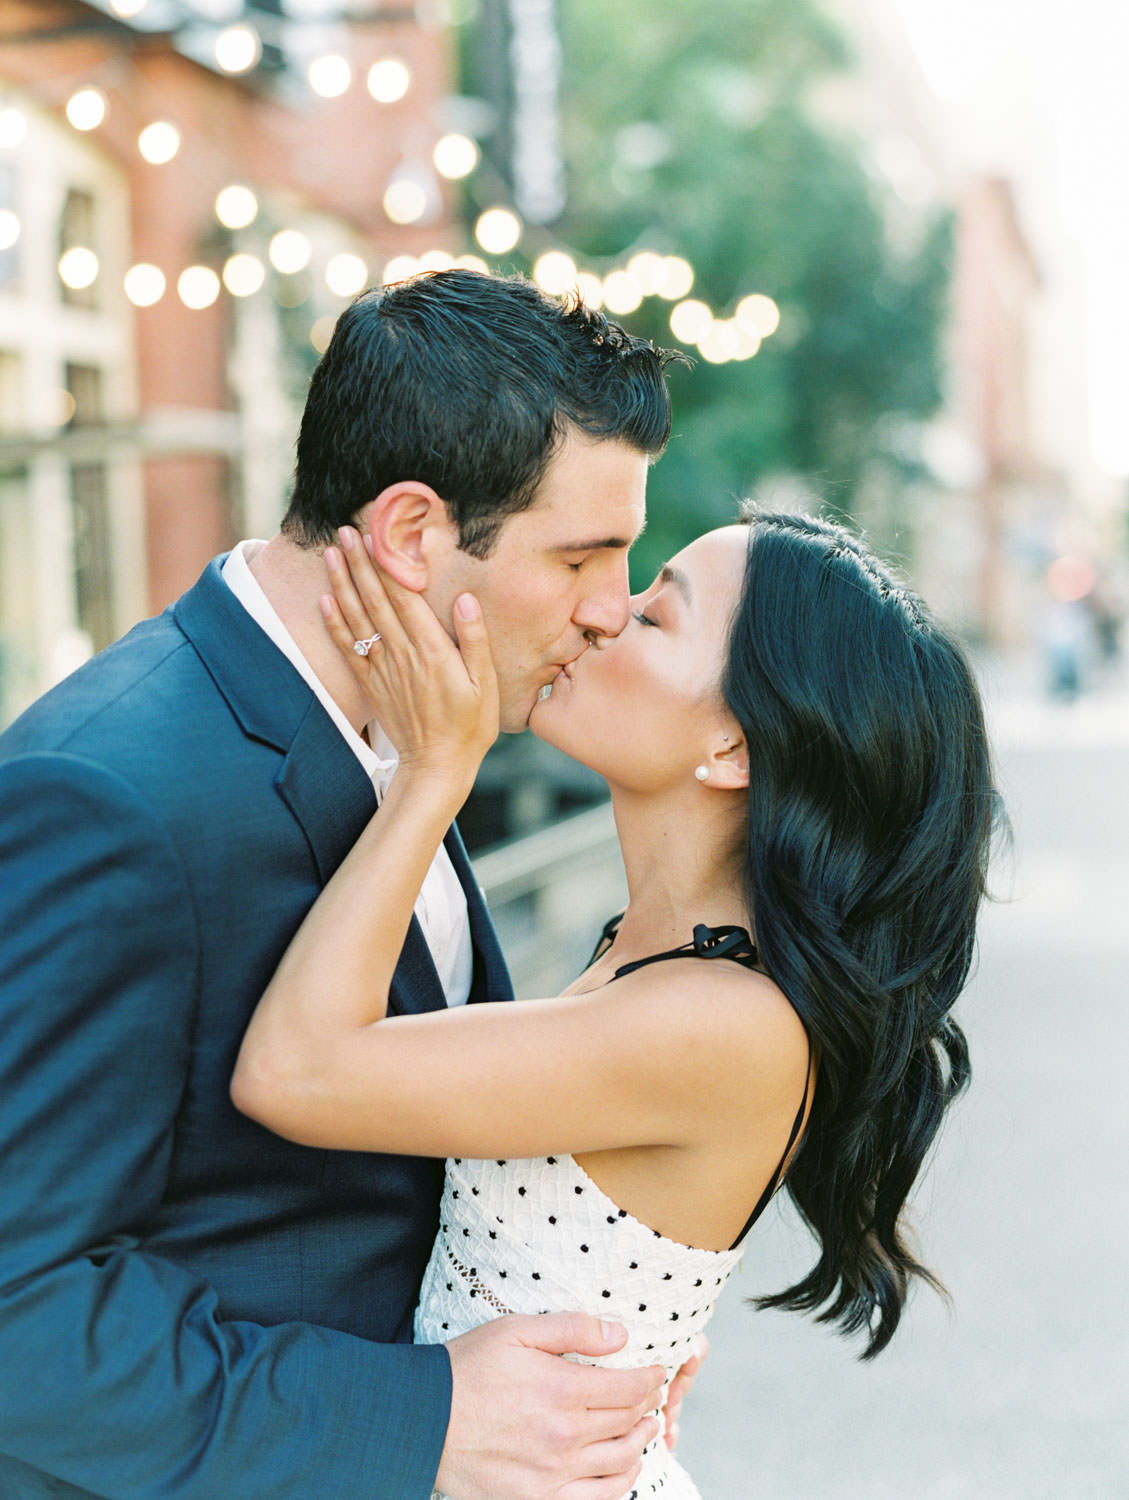 Groom and bride at a kissing. Bride in self portrait Ivory Hibiscus Floral Guipure Midi Dress and groom in navy suit. Downtown San Diego engagement photos on film by Cavin Elizabeth Photography